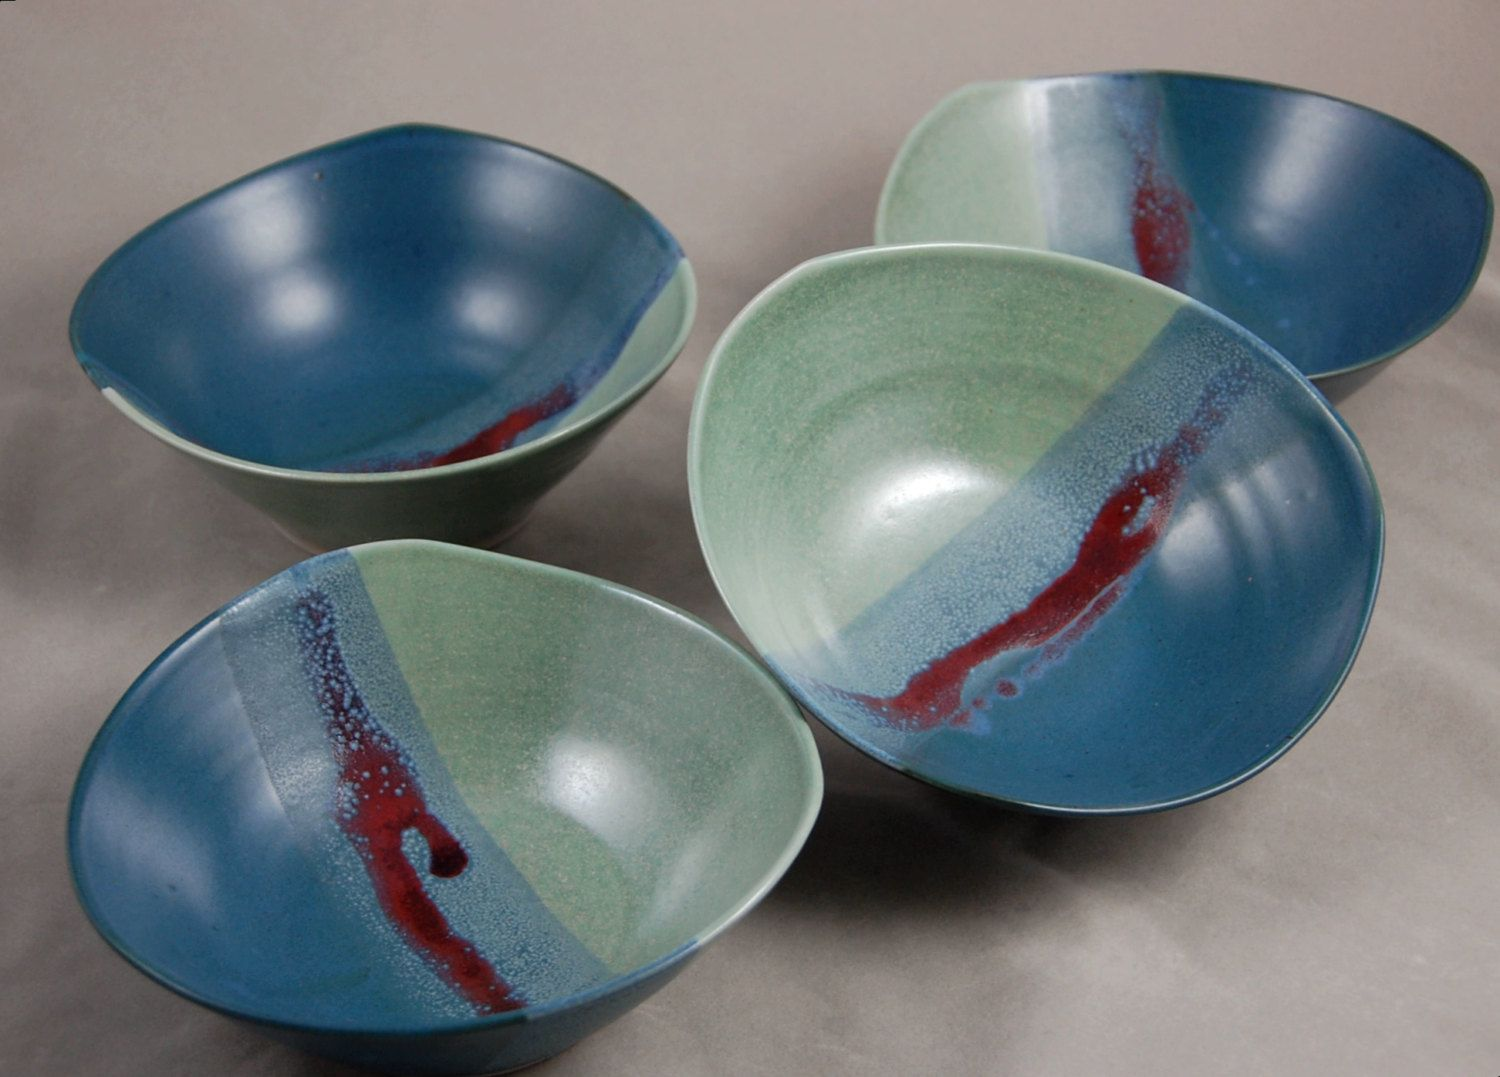 the  best contemporary dinnerware ideas on pinterest  photo to  - bowls set of  in aqua teal blue and red soup salad side bowl contemporarydinnerware